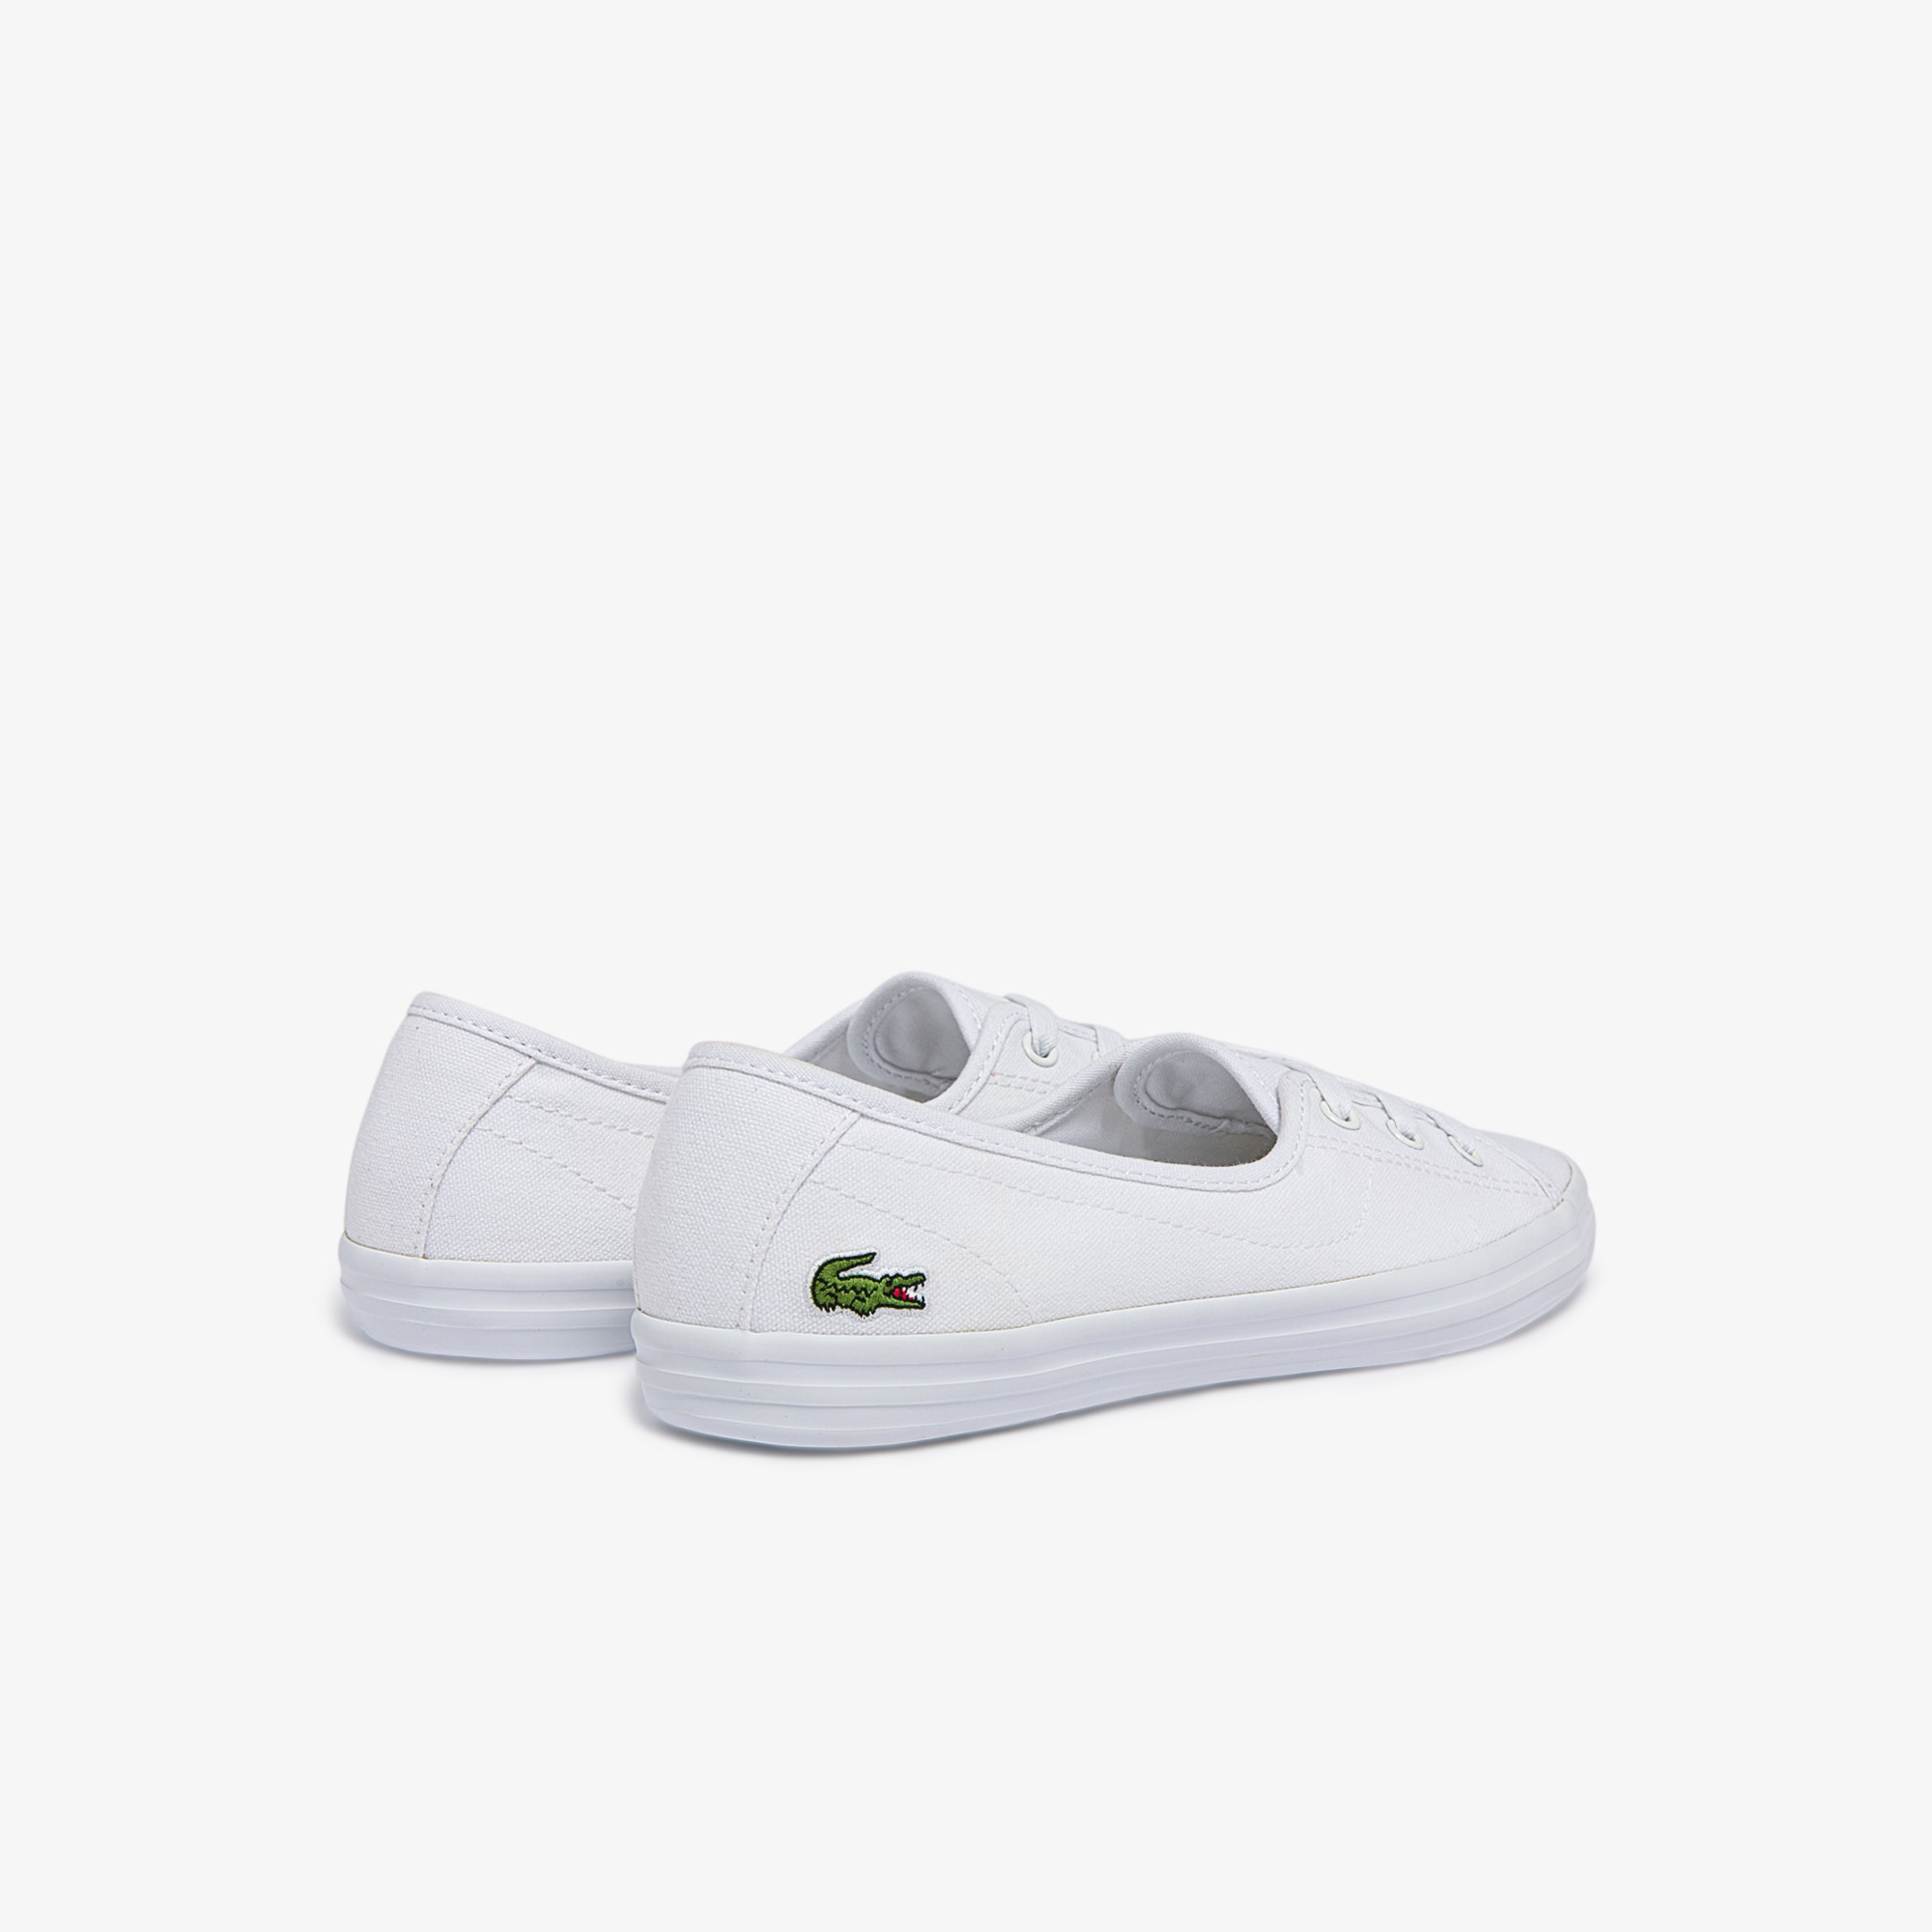 Damen-Sneakers ZIANE CHUNKY aus Canvas